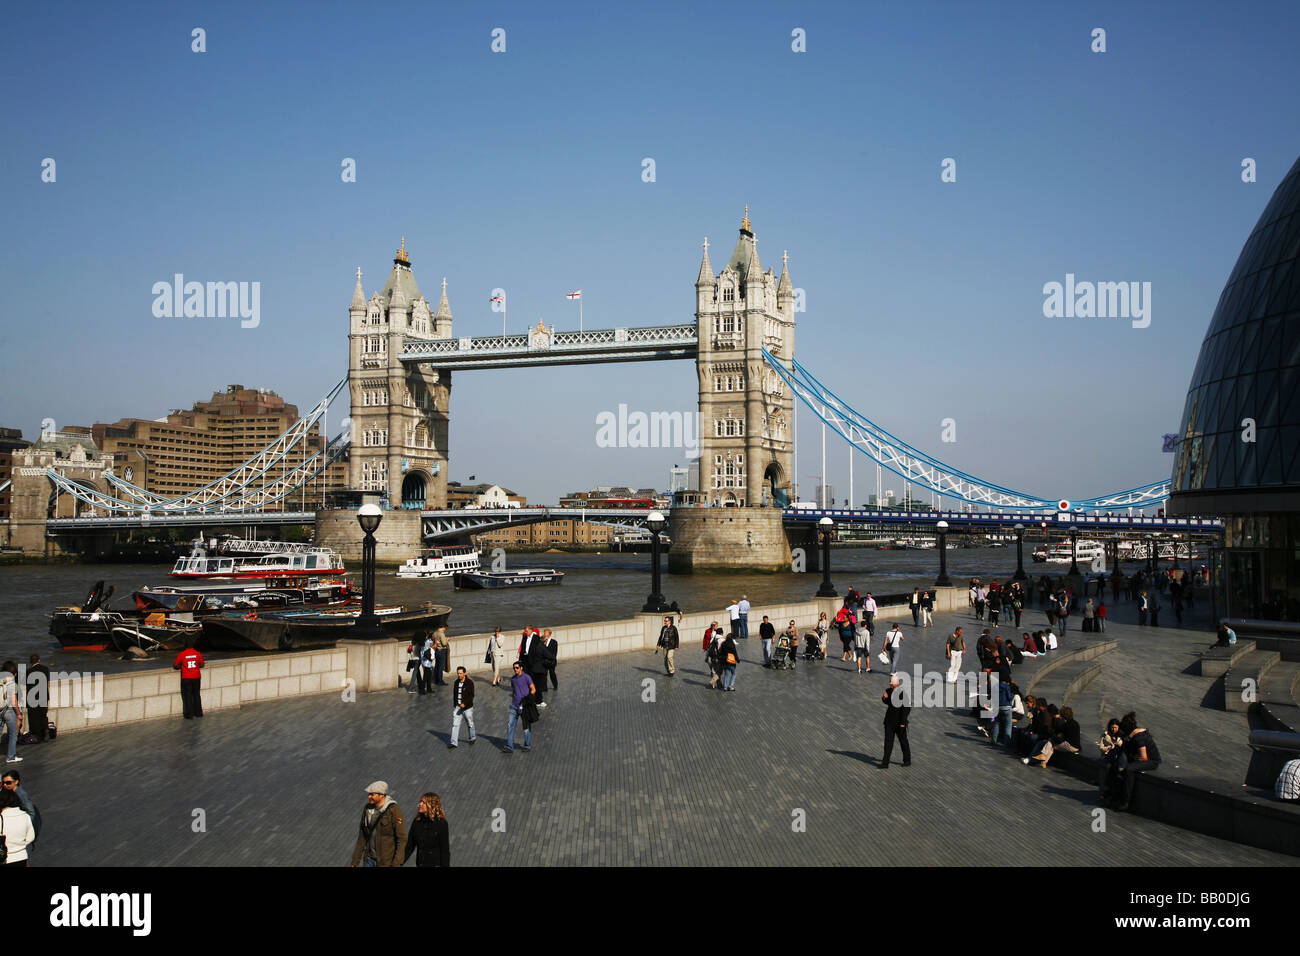 A view of Tower Bridge with City Hall, the Greater London Authority Building, on the right - Stock Image